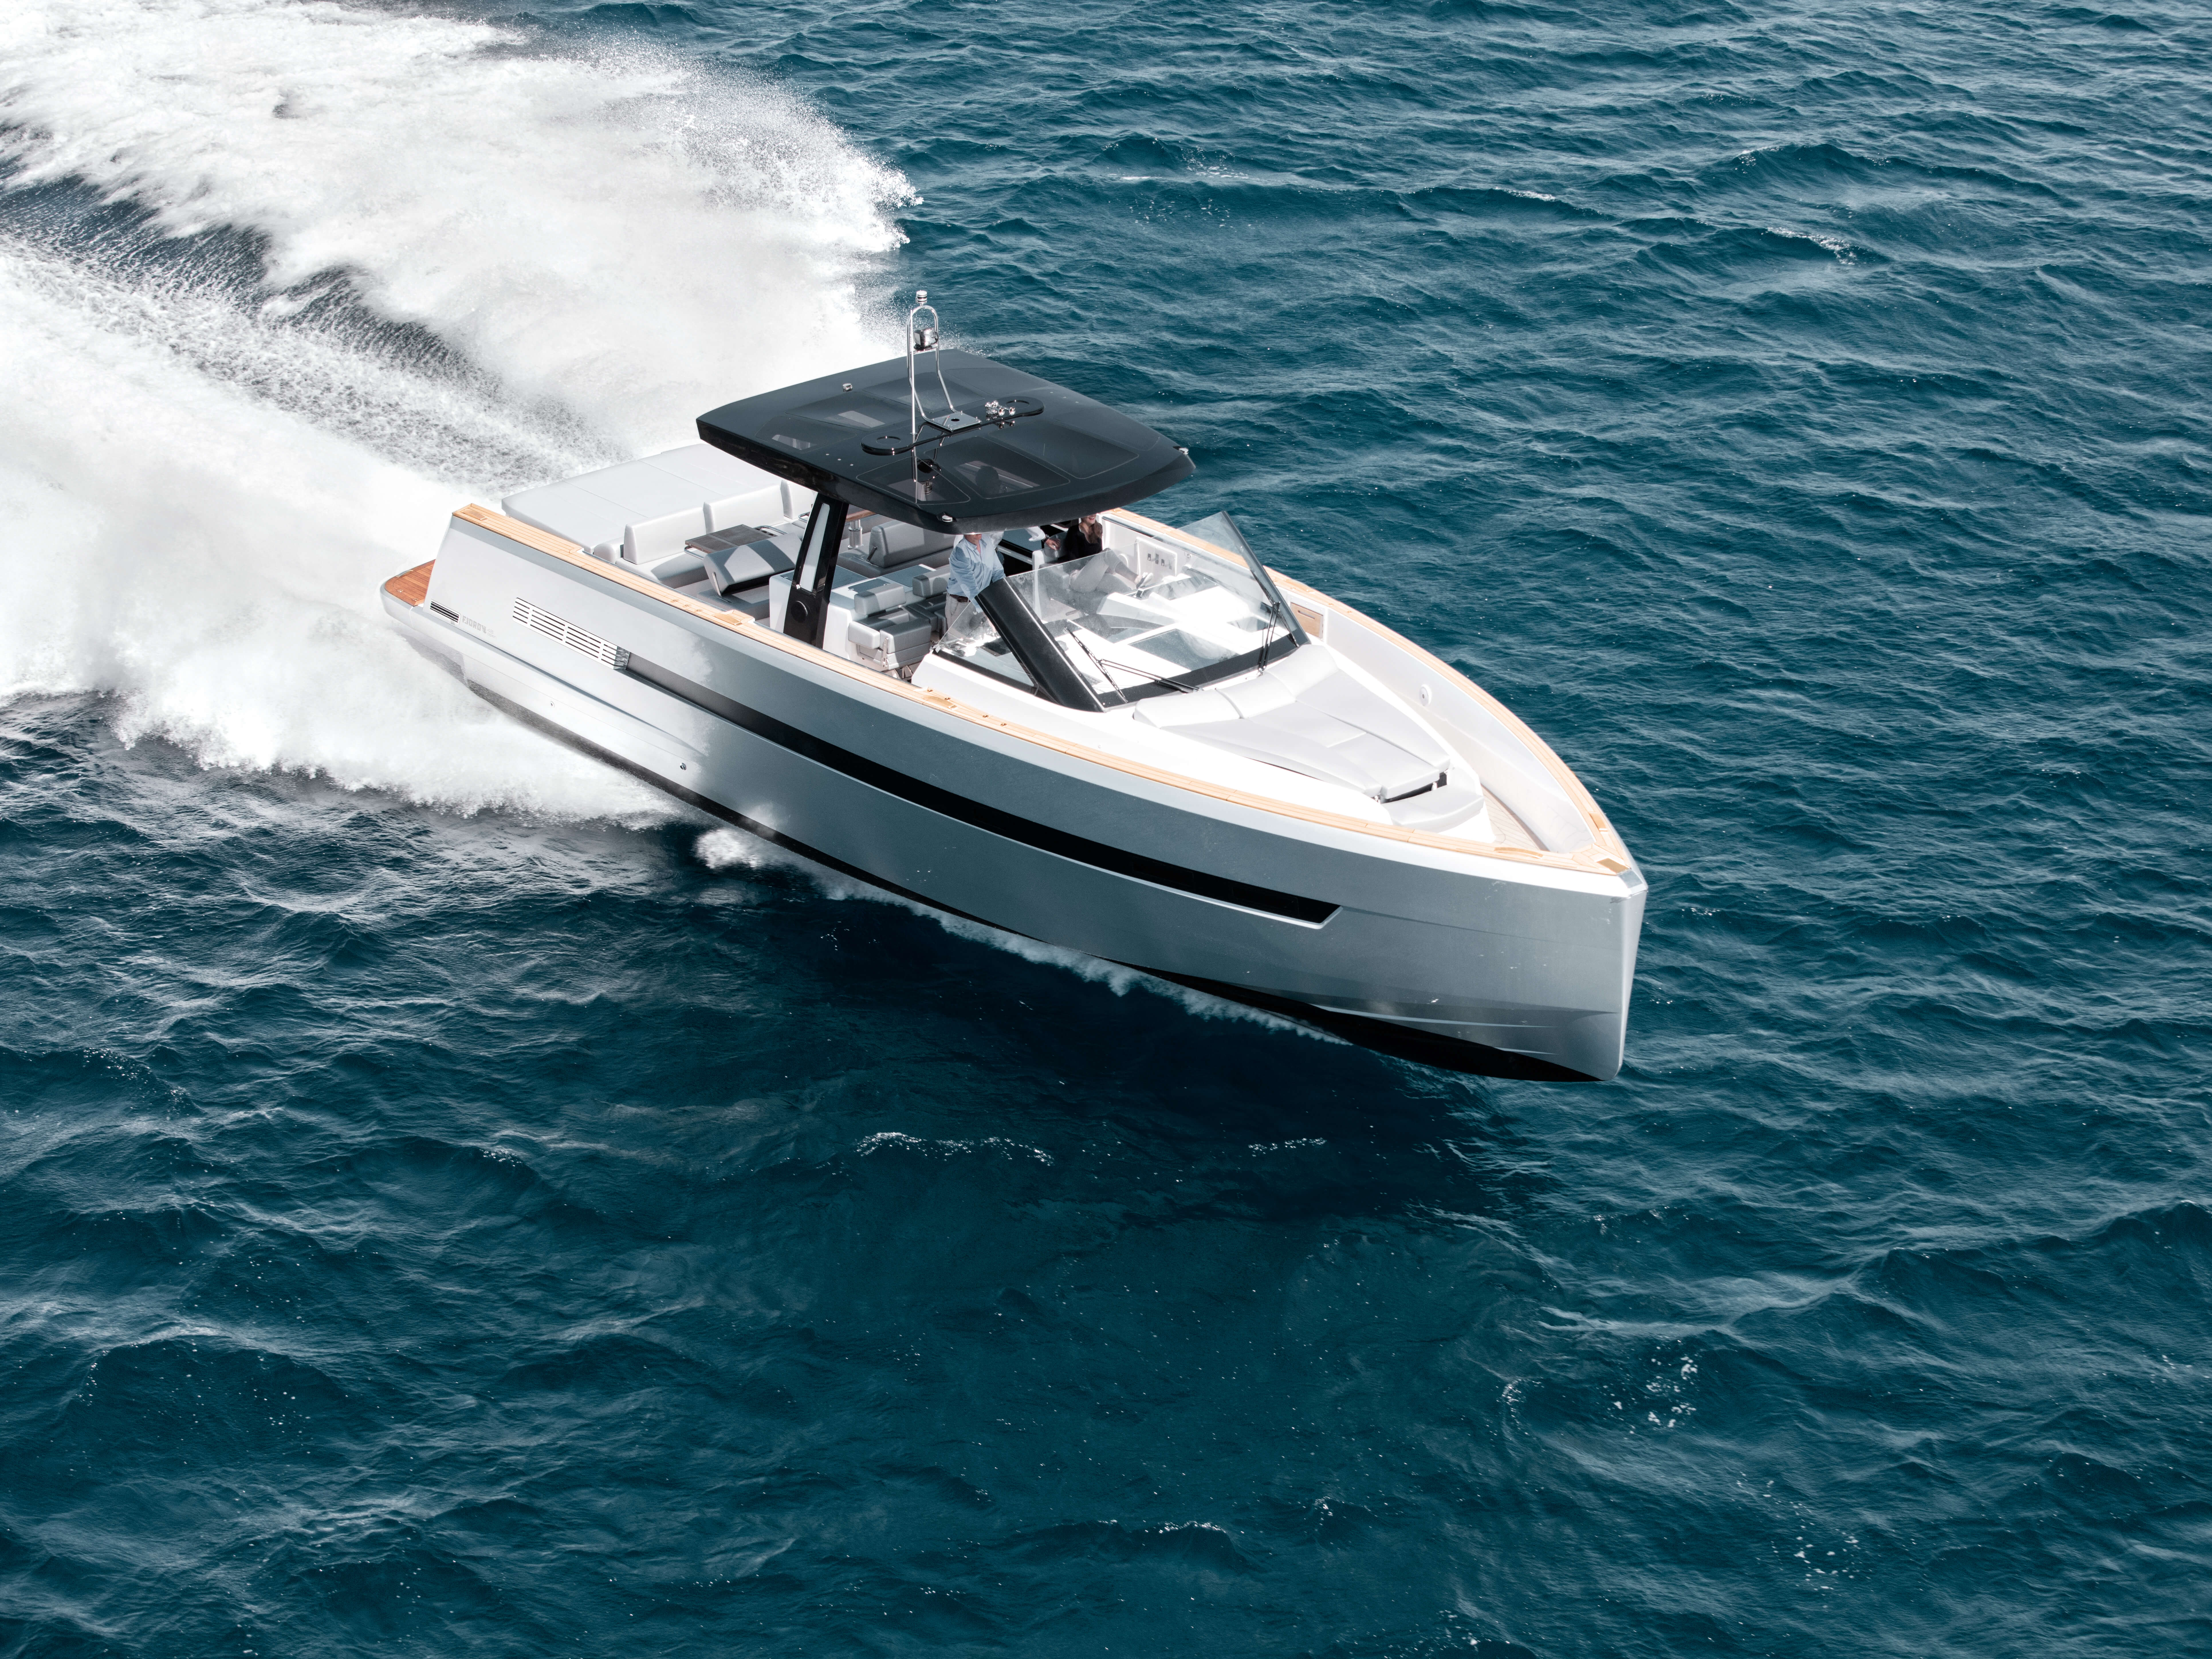 Fjord 48 open Exterior ride | painted hull, foredeck sunbed, T-top with skylights | Fjord